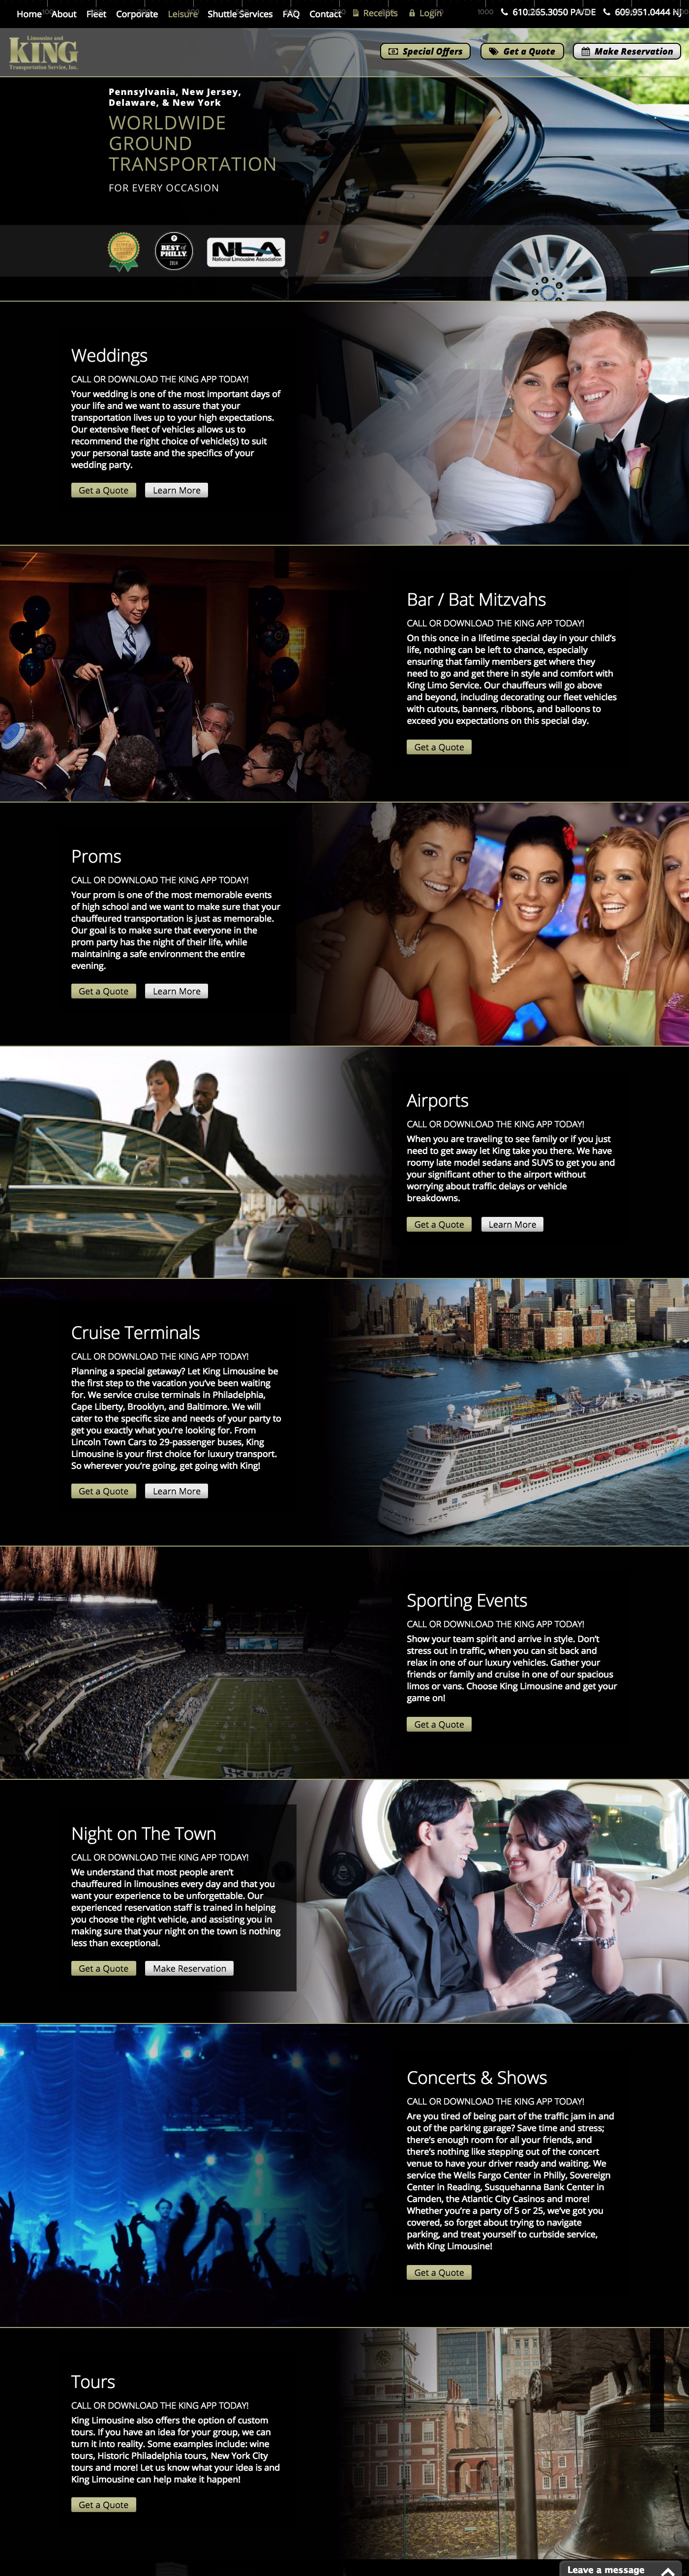 Limo Web Design Philadelphia & Marketing Agency by Nexvel®